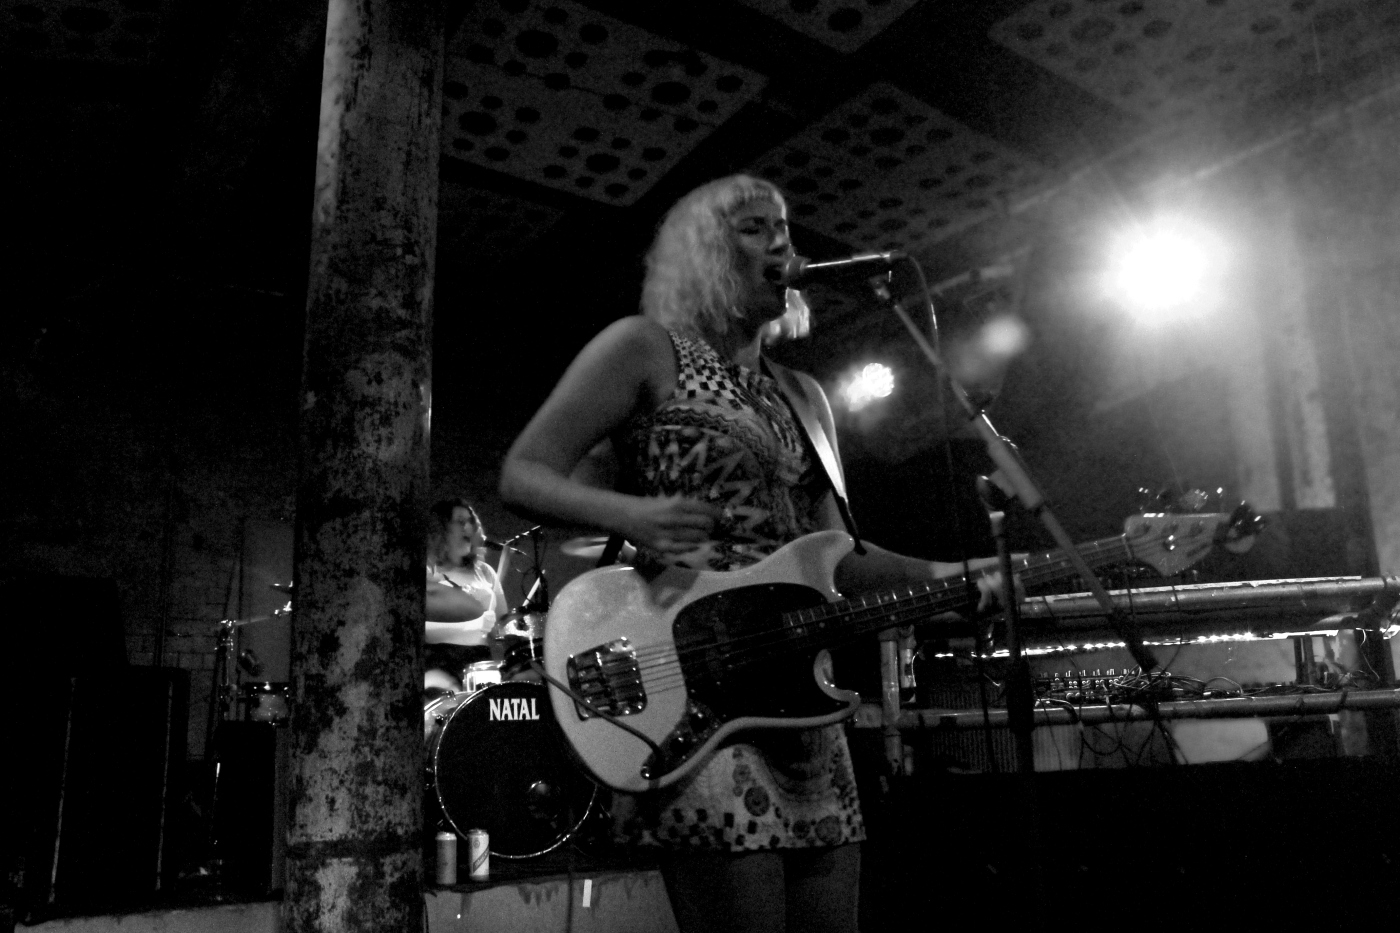 Greyscale image, The Twistettes. Jo D'arc, a white woman with blonde hair, playing a bass guitar, singing into a floor microphone. Behind her. Nicky D'arc, also a white woman, is playing drums.